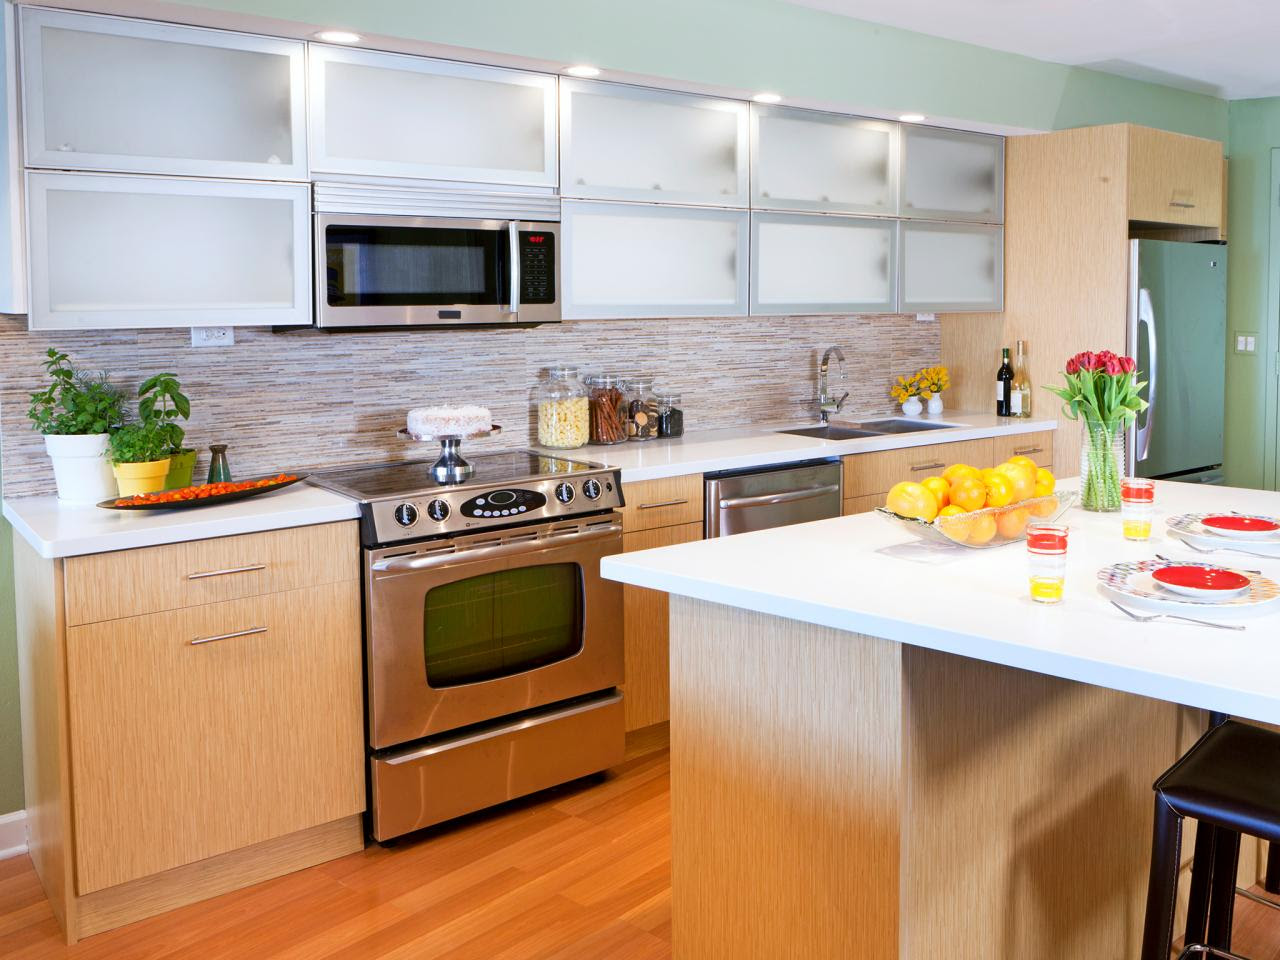 Painting Kitchen Cabinets: Pictures, Options, Tips  Ideas  Kitchen Designs  Choose Kitchen